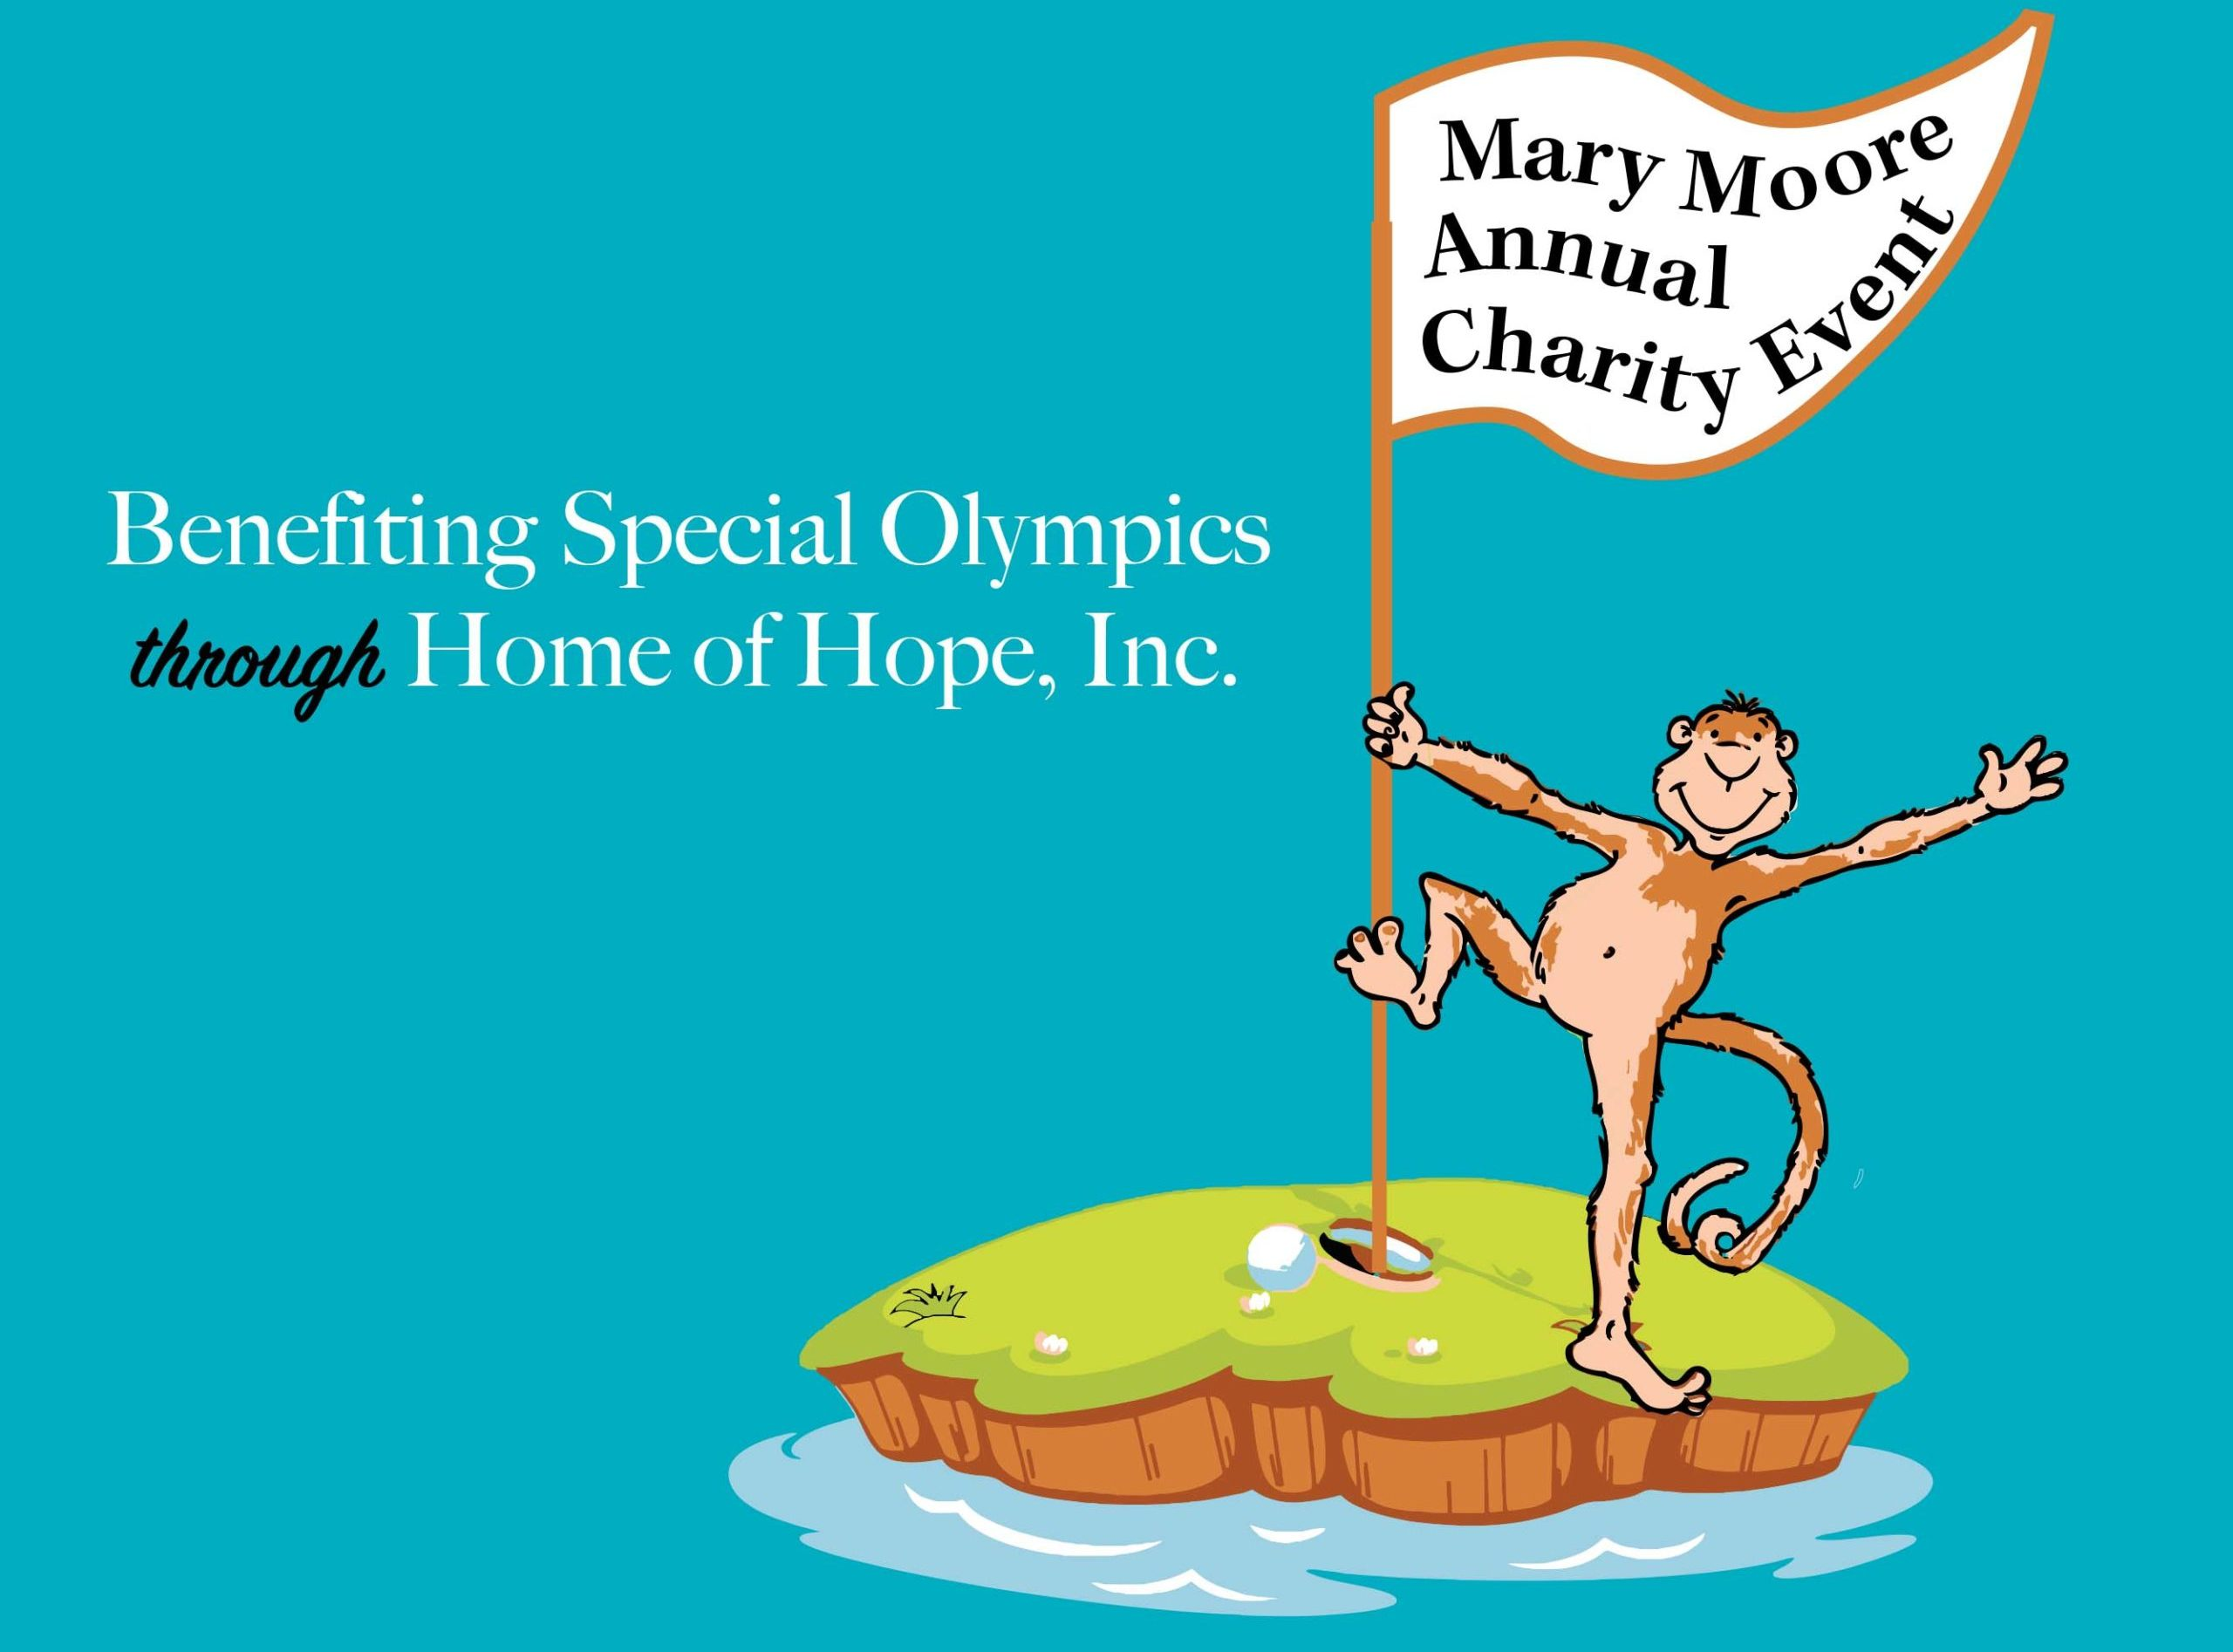 Mary Moore Charity Event Special Olympics Monkey Island